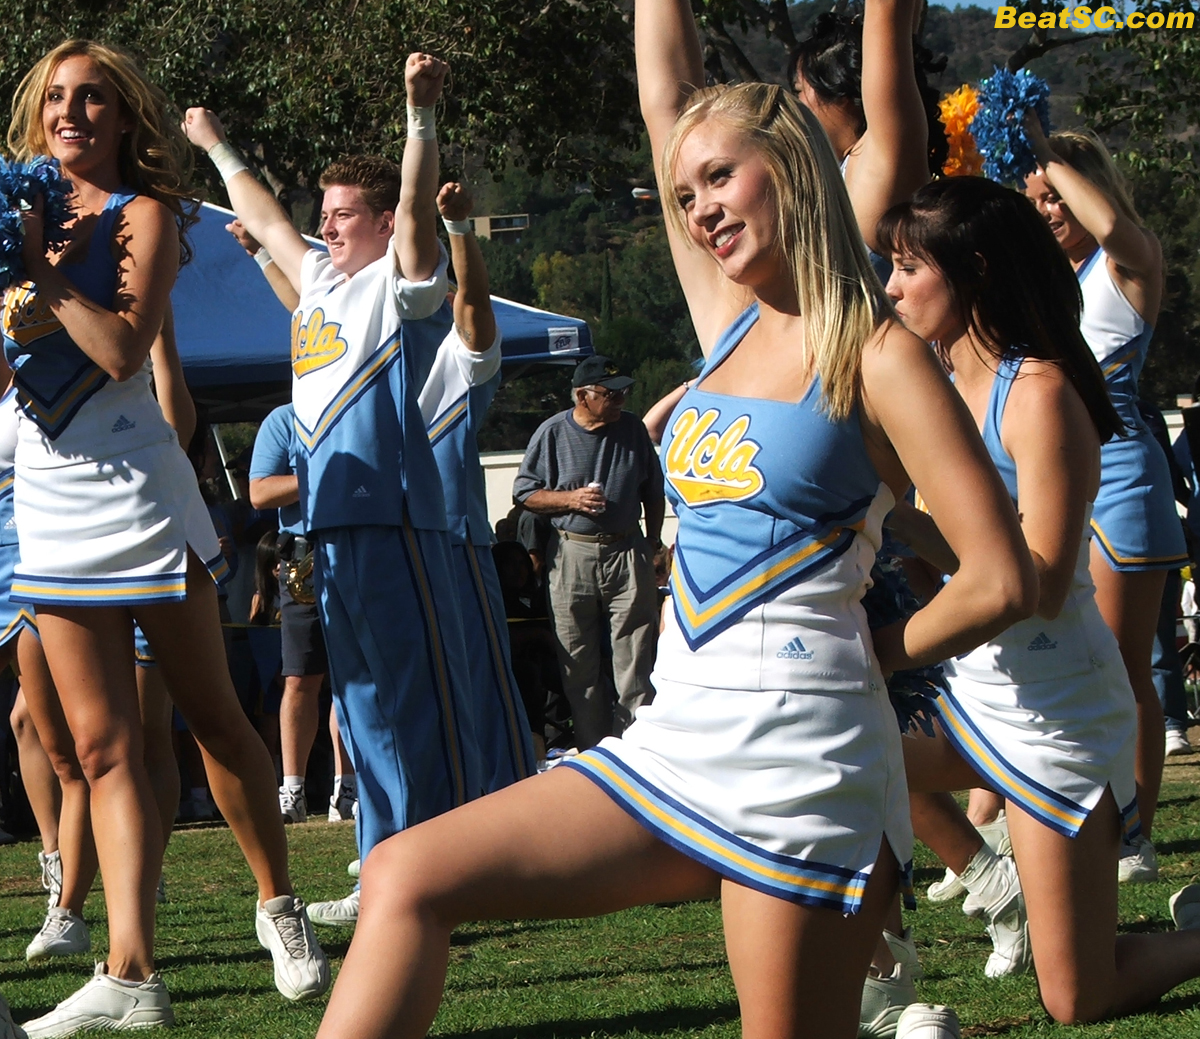 Upskirts high school cheerleader crotch shots all